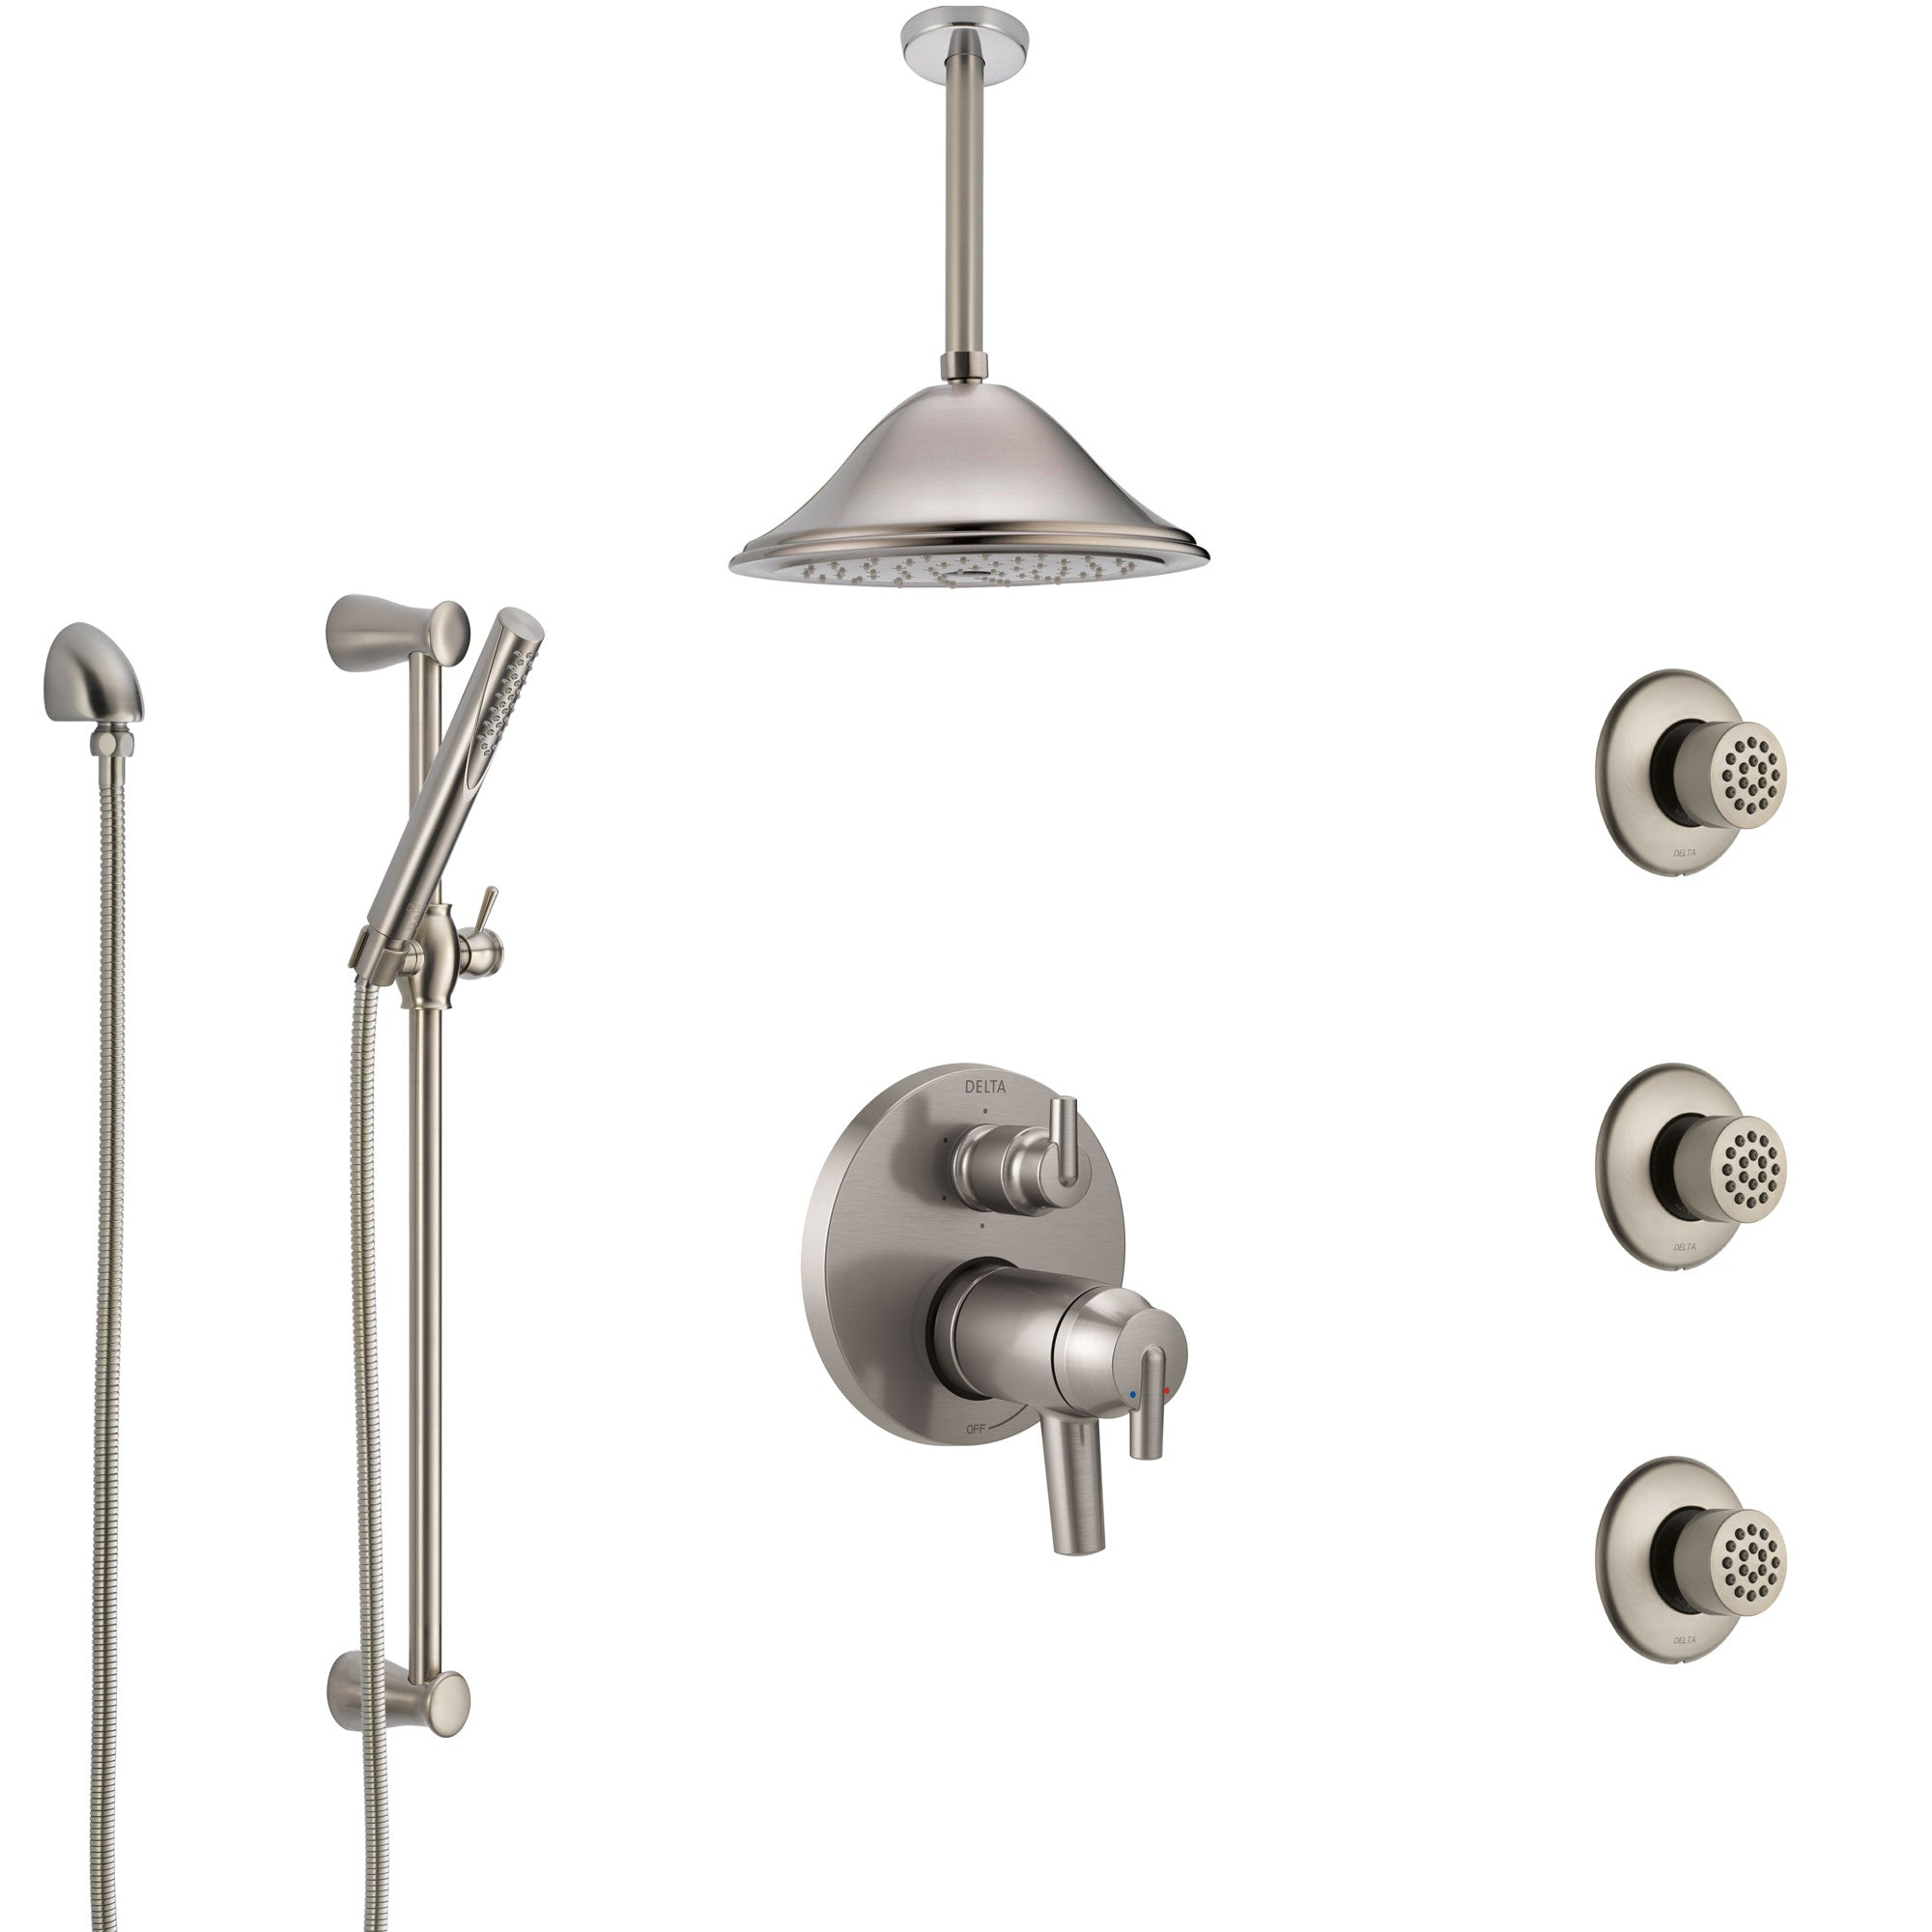 Delta Trinsic Dual Thermostatic Control Stainless Steel Finish Shower System, Ceiling Showerhead, 3 Body Jets, Hand Spray SS27T959SS6